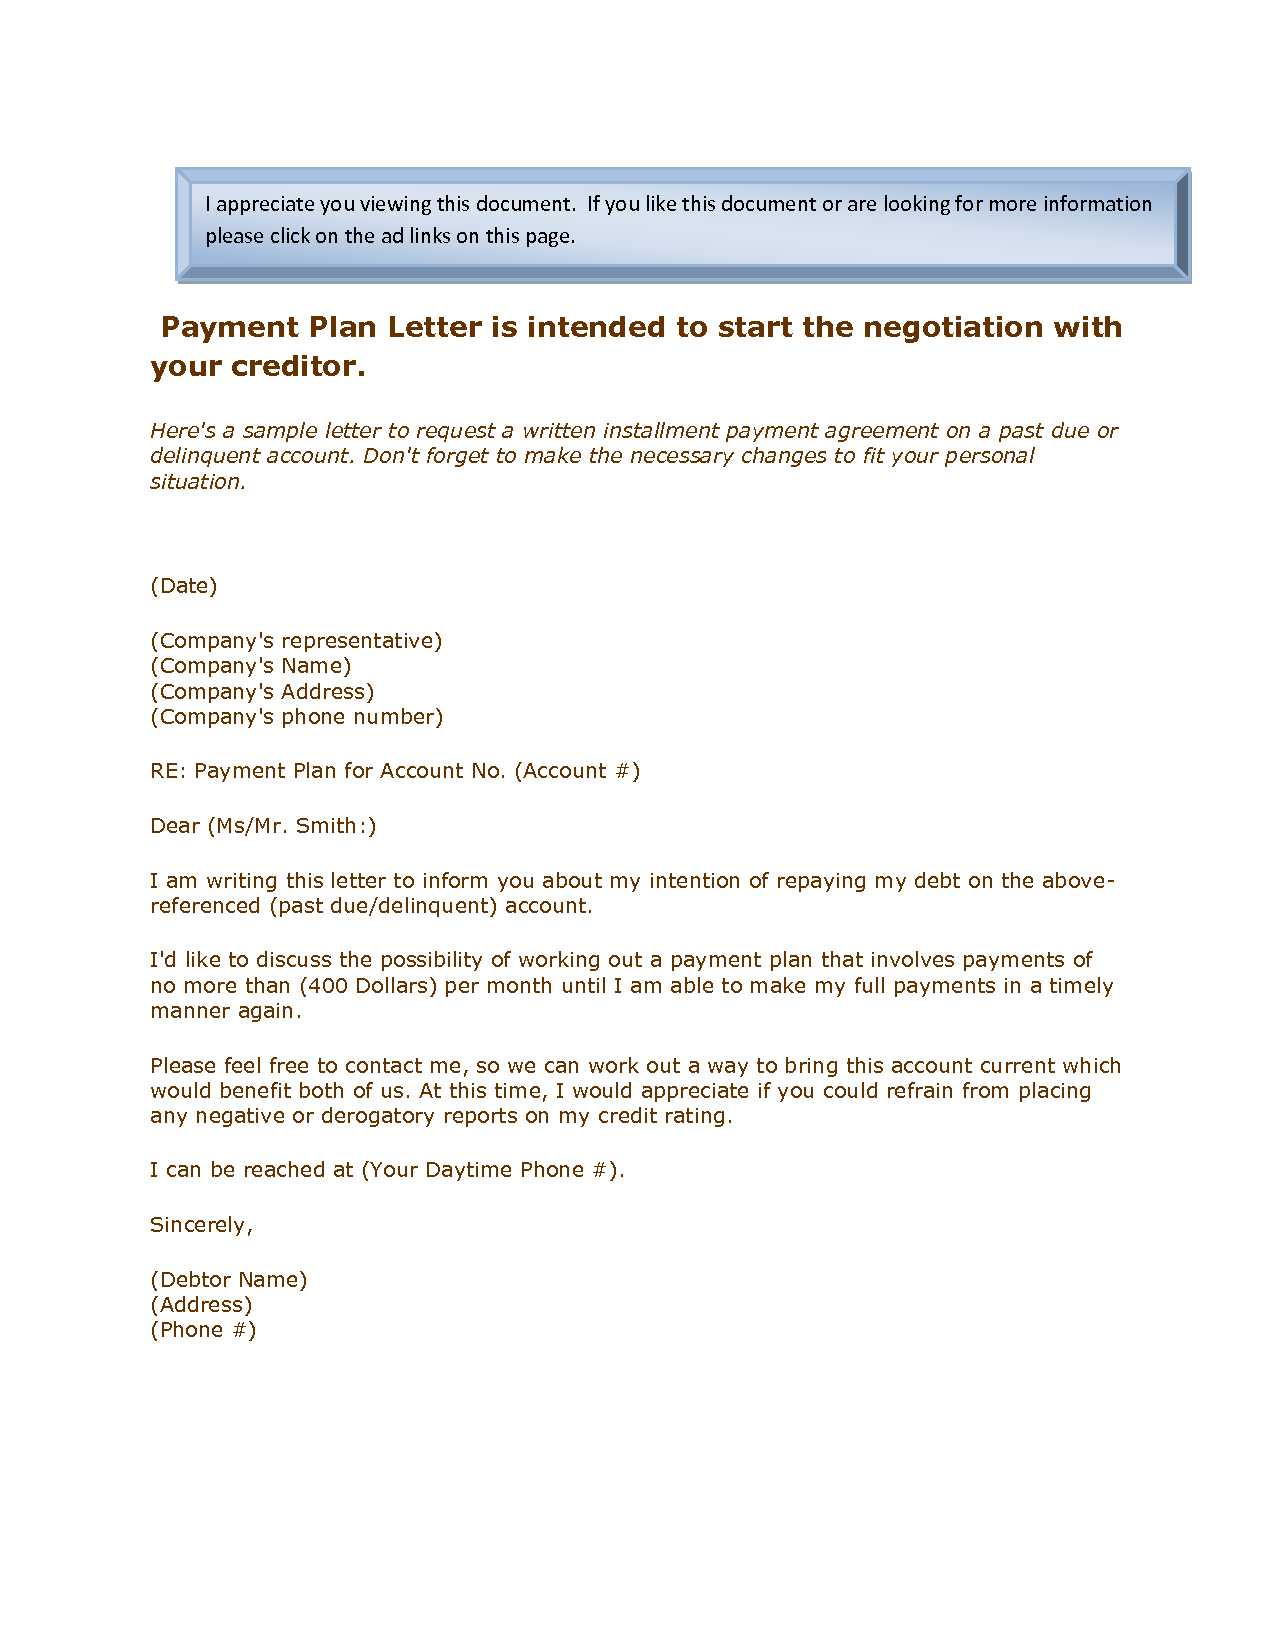 Installment Payment Agreement Letter Template Examples Letter